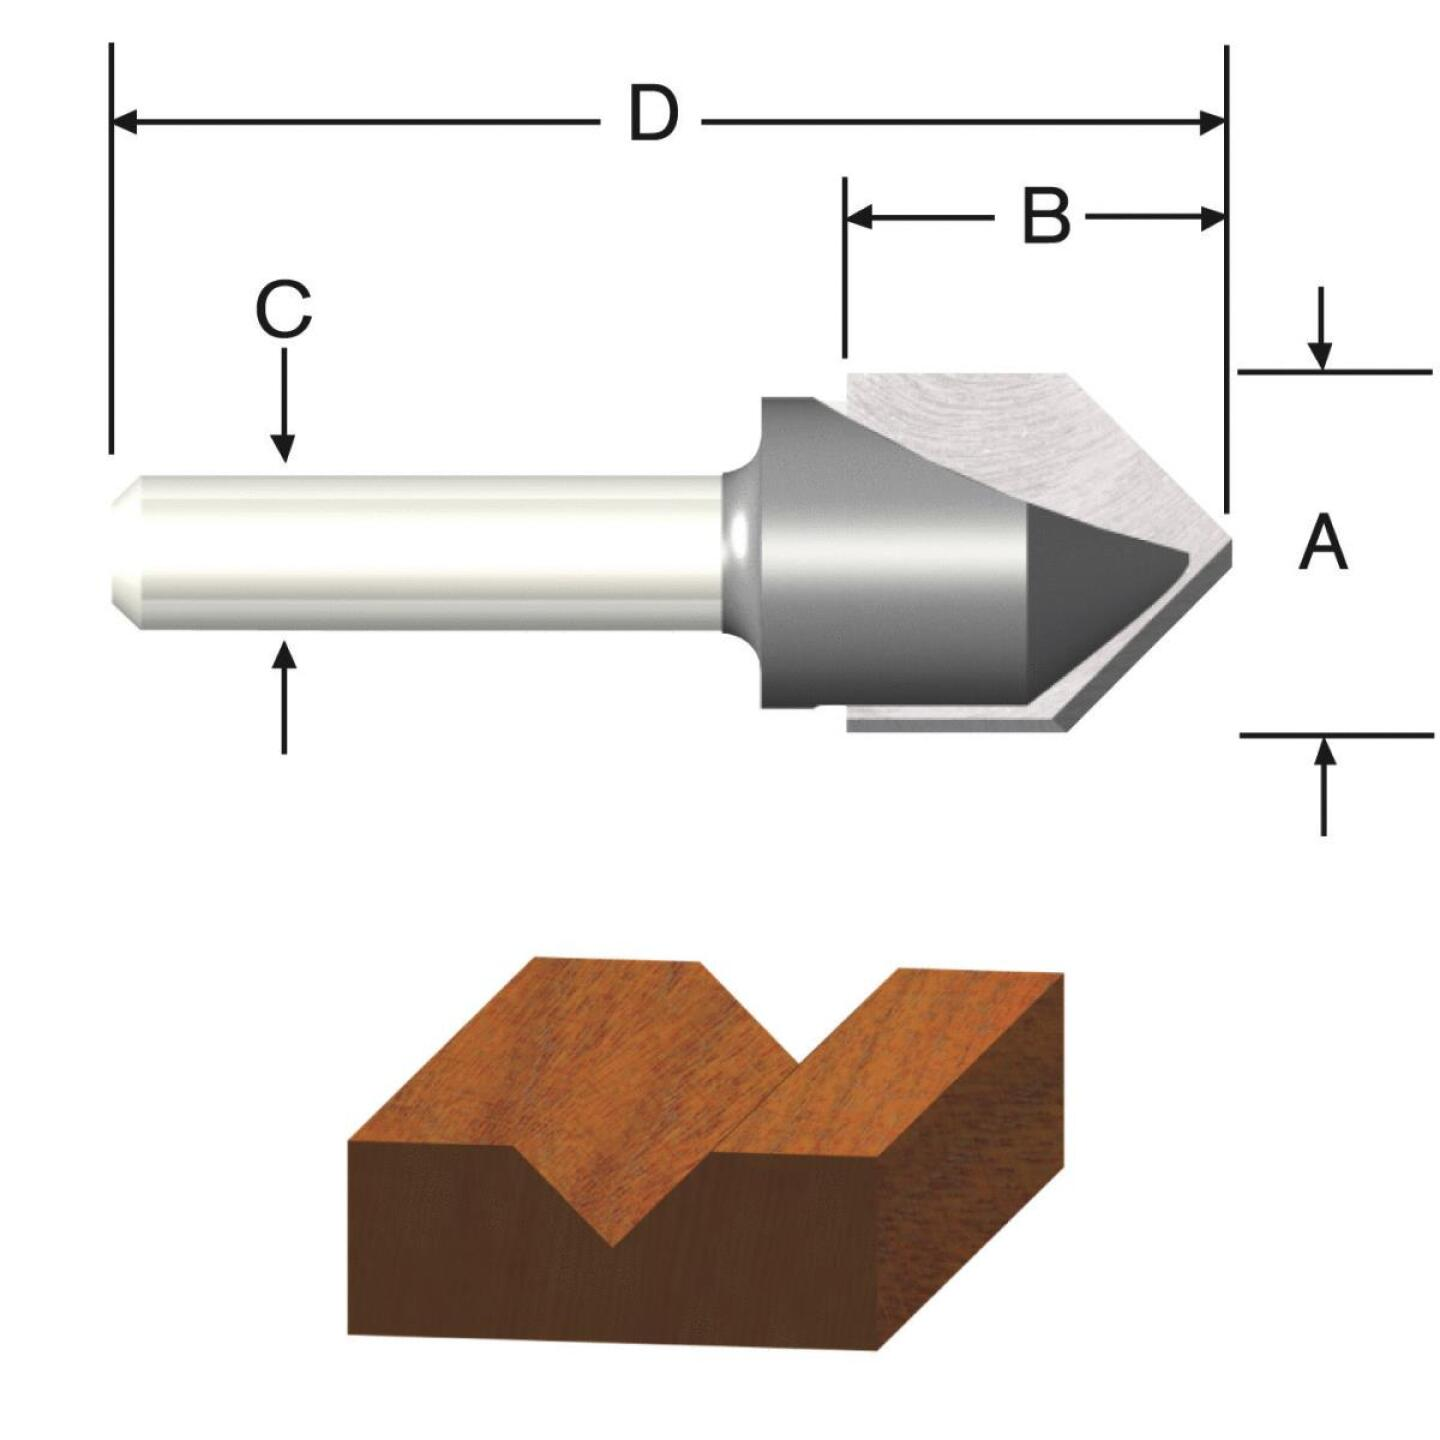 Vermont American Carbide Tip 90 Degree V-Groove Bit Image 1